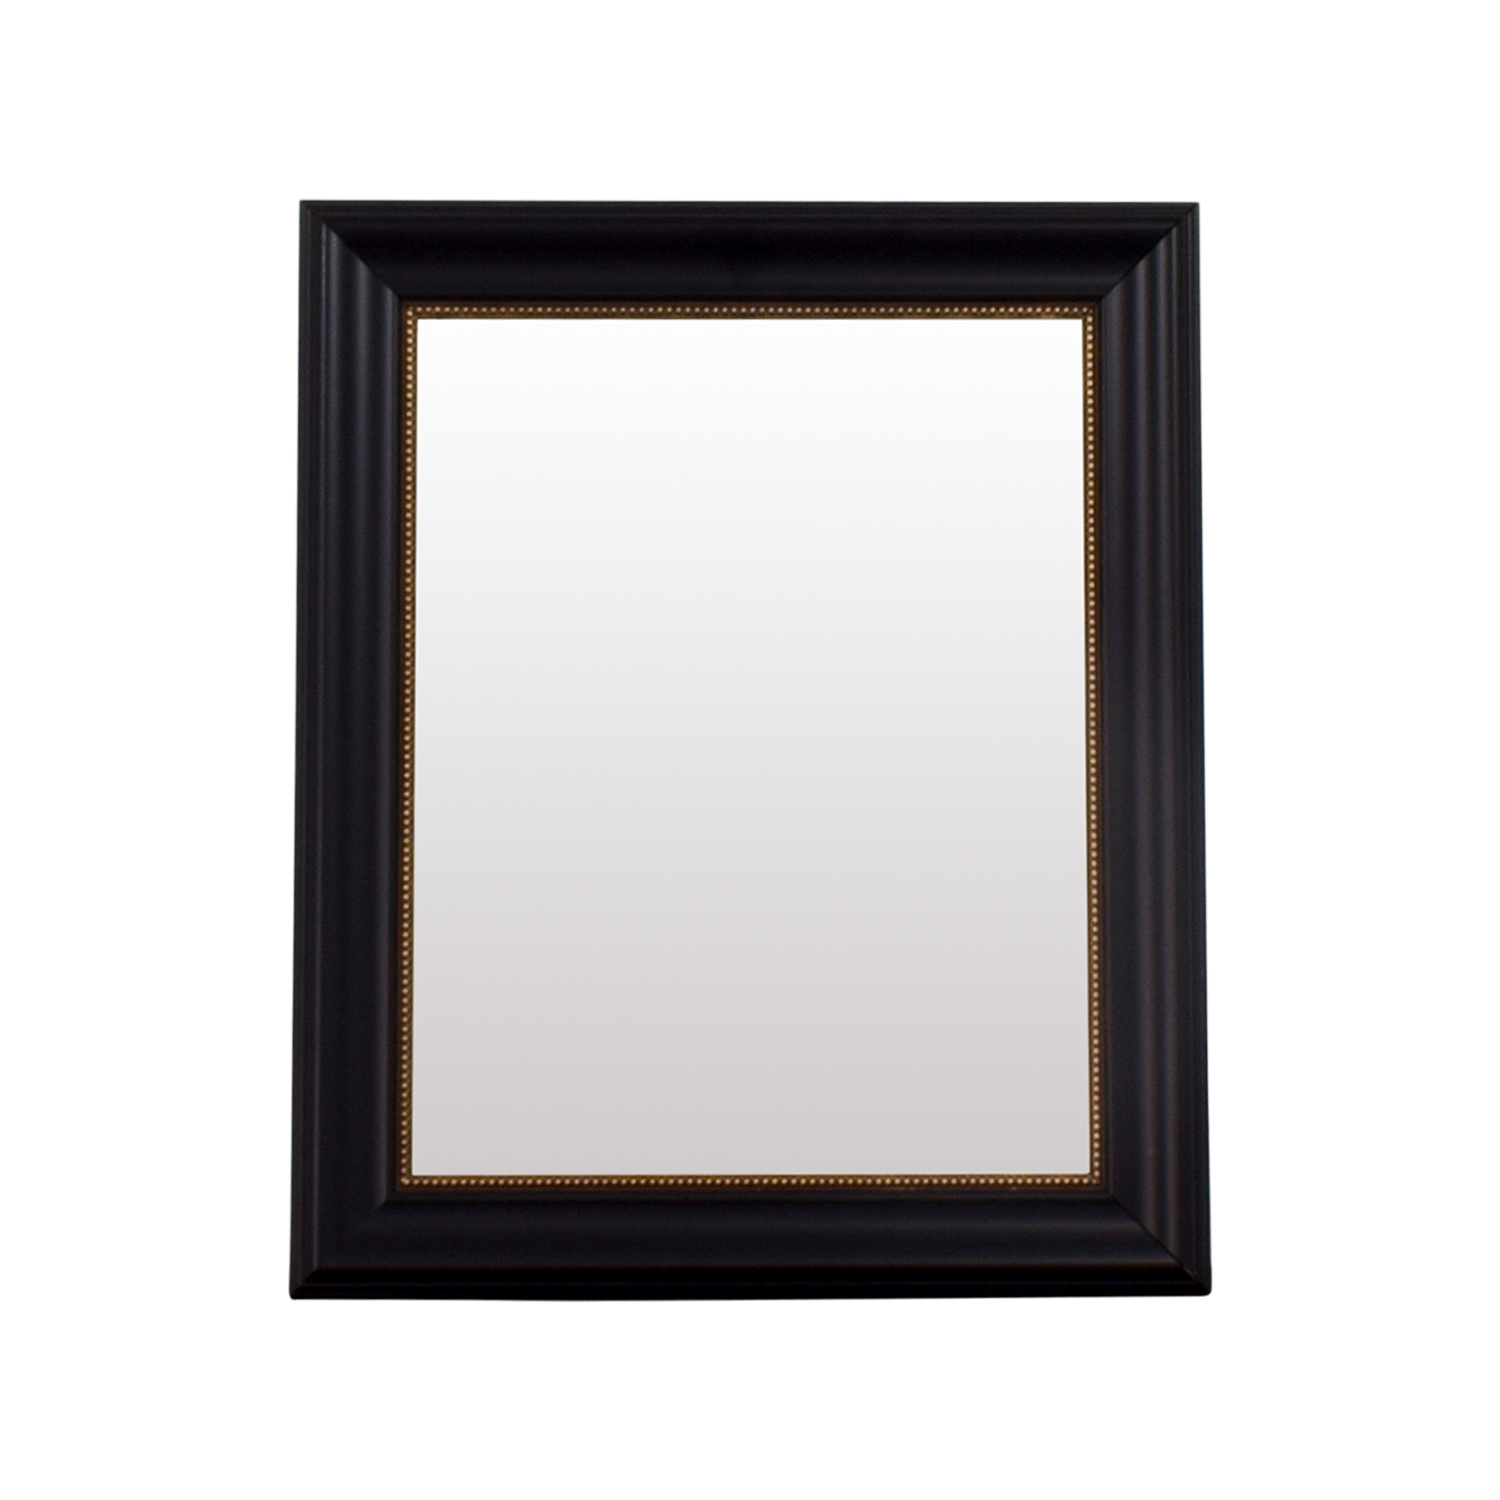 HomeGoods Black and Gold Beveled Mirror / Mirrors